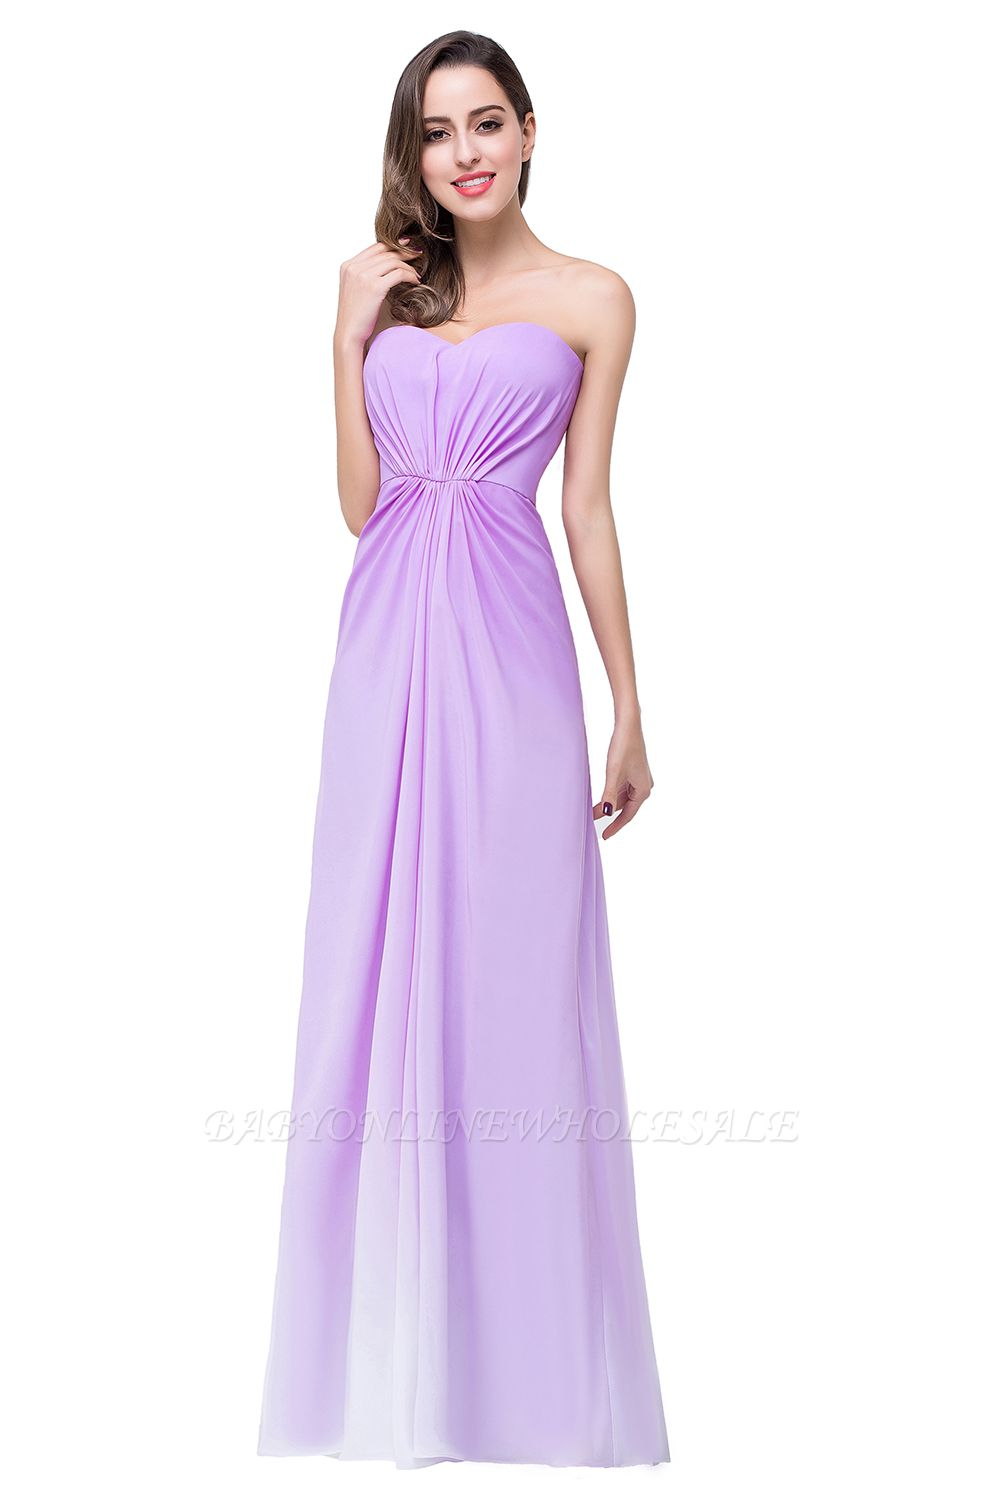 ADRIENNE | A-line Strapless Chiffon Bridesmaid Dress